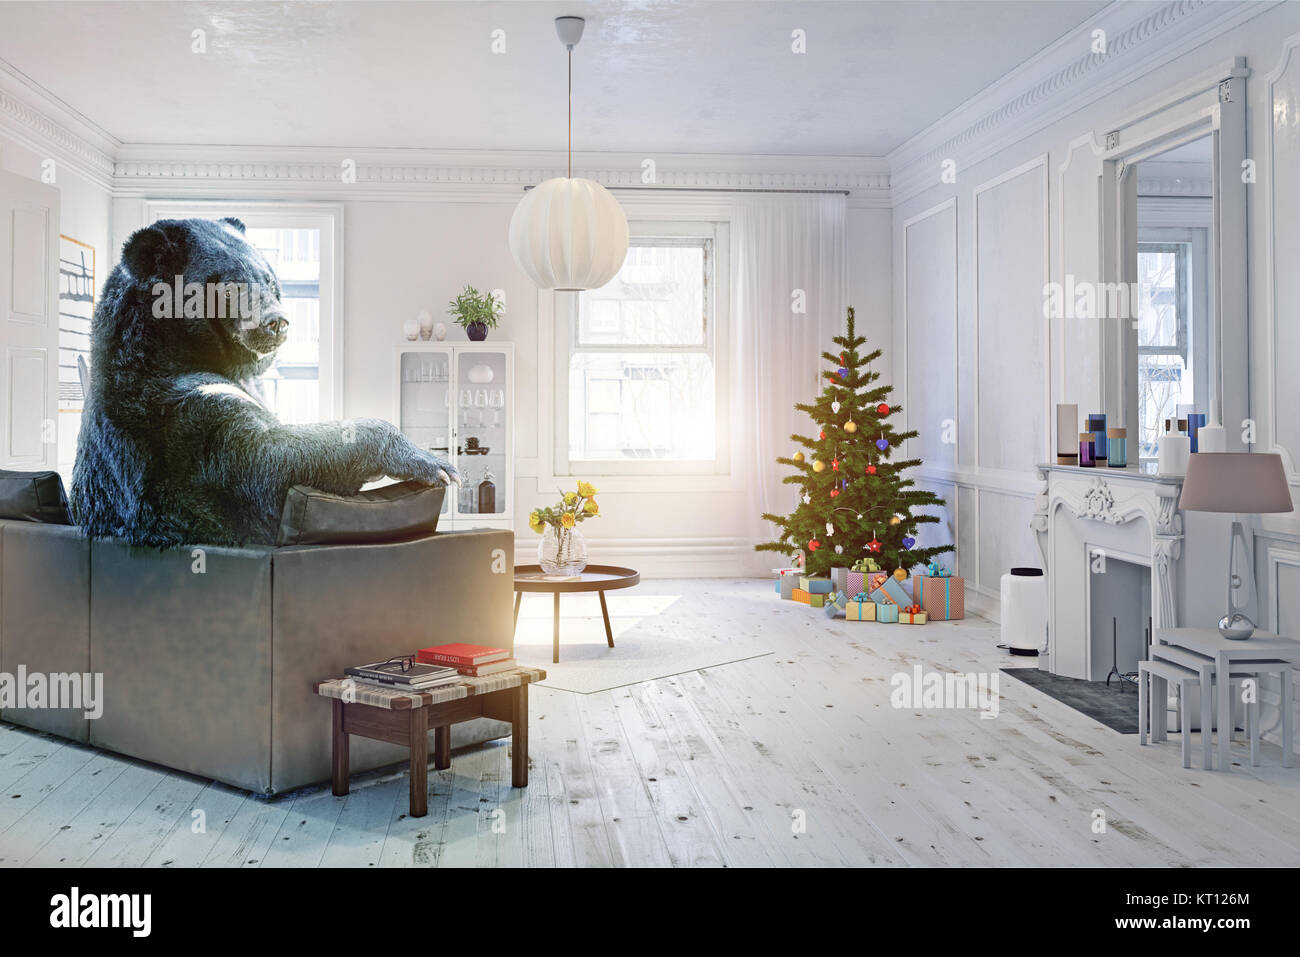 The bear relaxing in the christmas celebration decorated room on the sofa. Creative illustration. Photo and CG elements - Stock Image